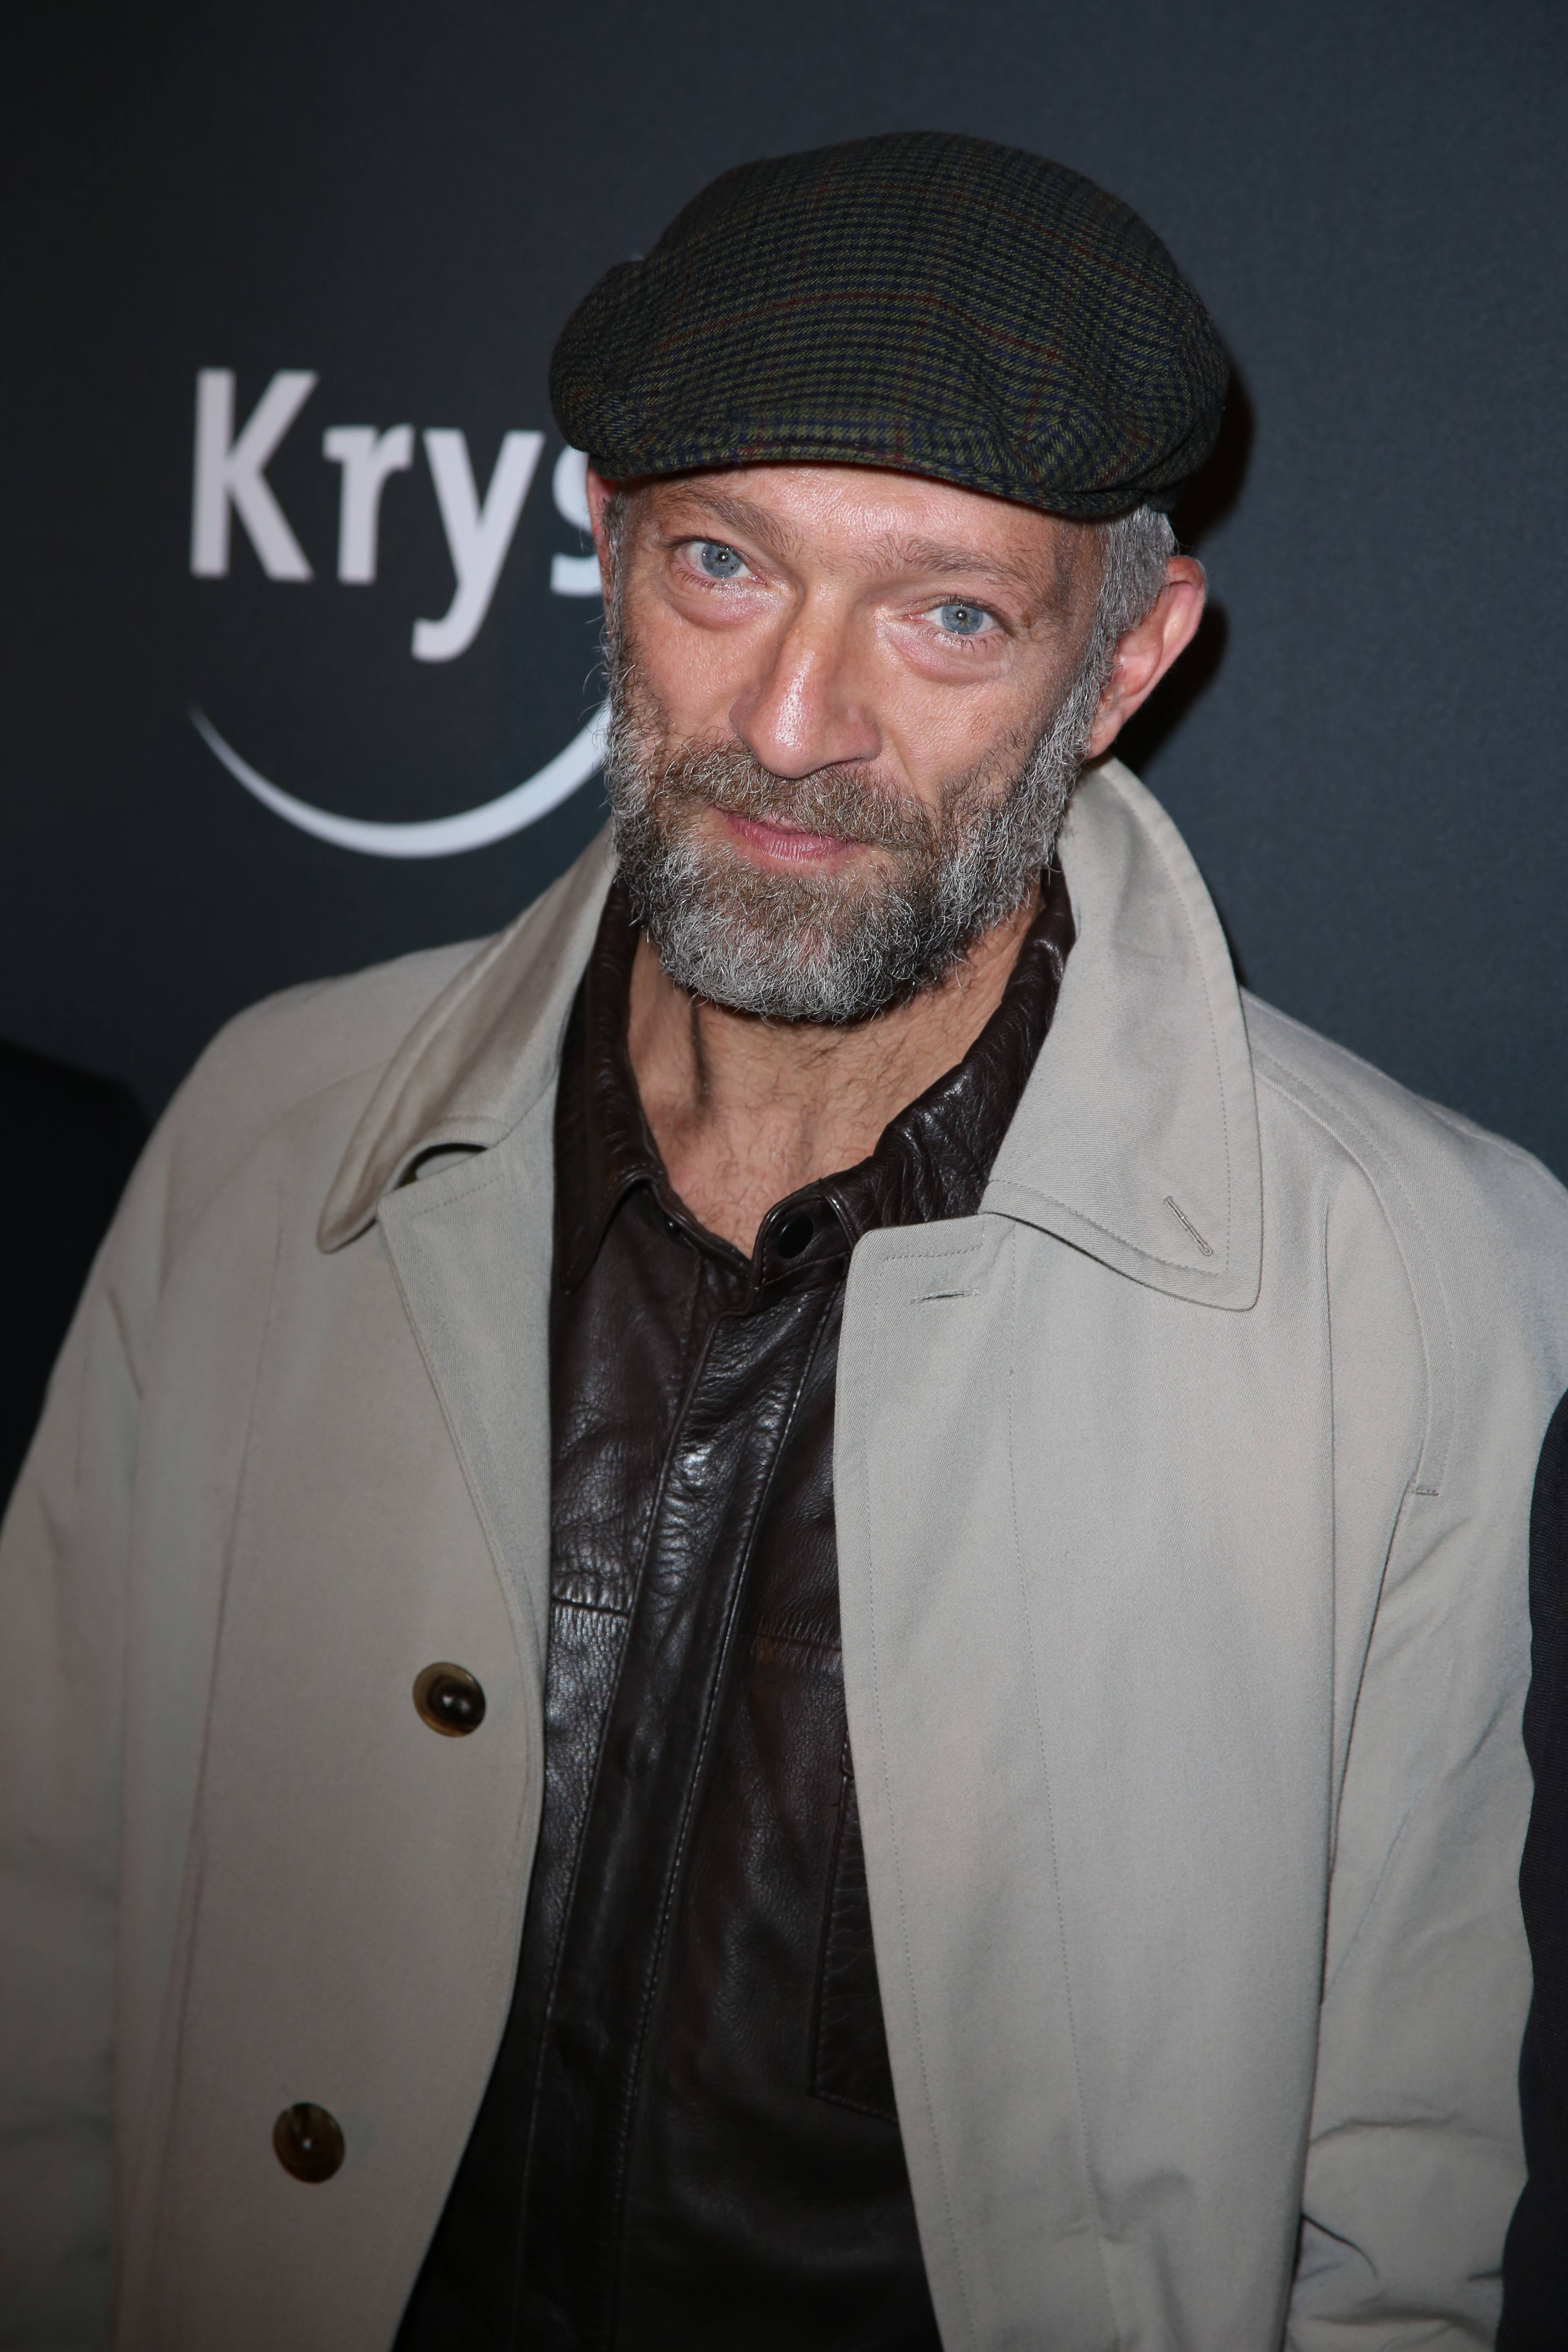 Vincent Cassel Attending Prive Revaux Eyewear By Krys Party Held At Cafe De L'Homme In Paris, On September 27, 2018. Photo By